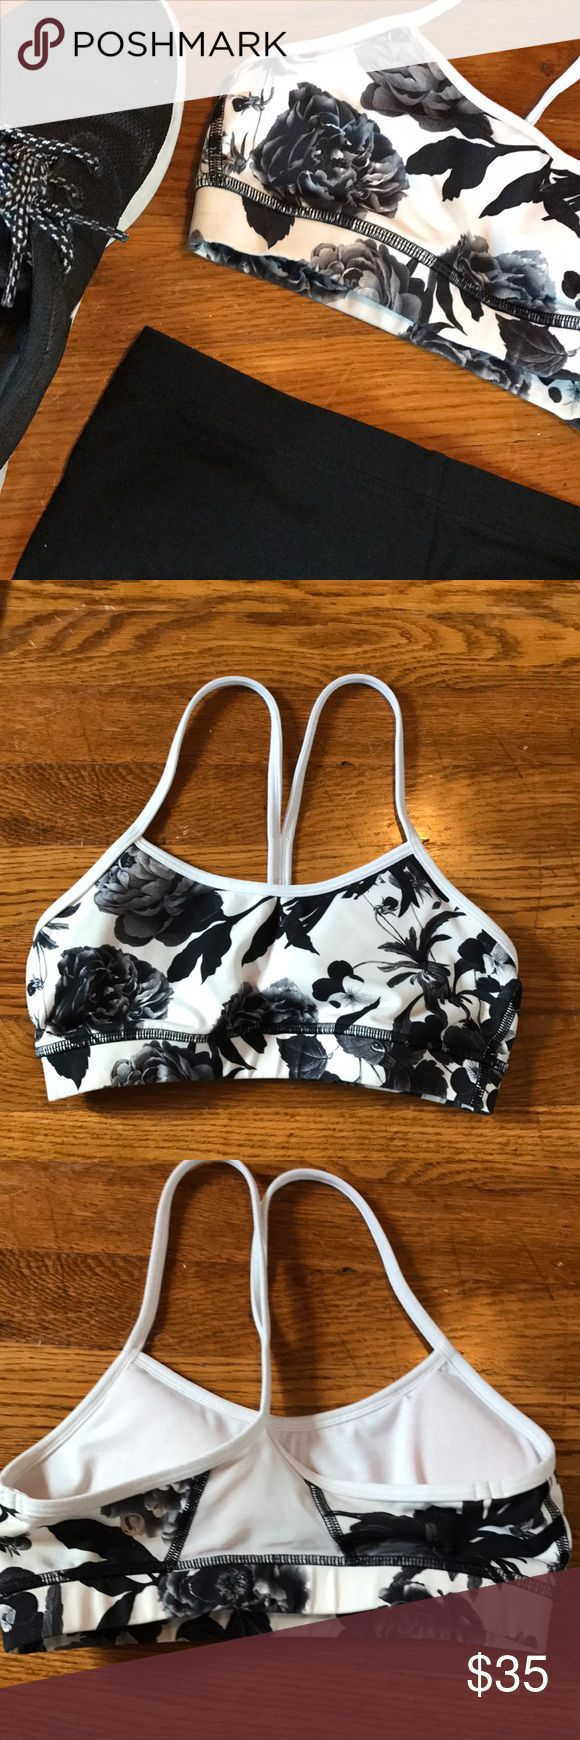 Floral Sports Bra Size 4 lululemon sports bra. Gently used. I'm open to offers and it comes from a smoke free home. Has mesh detailing in back. Comes with the padding lululemon athletica Intimates & Sleepwear Bras